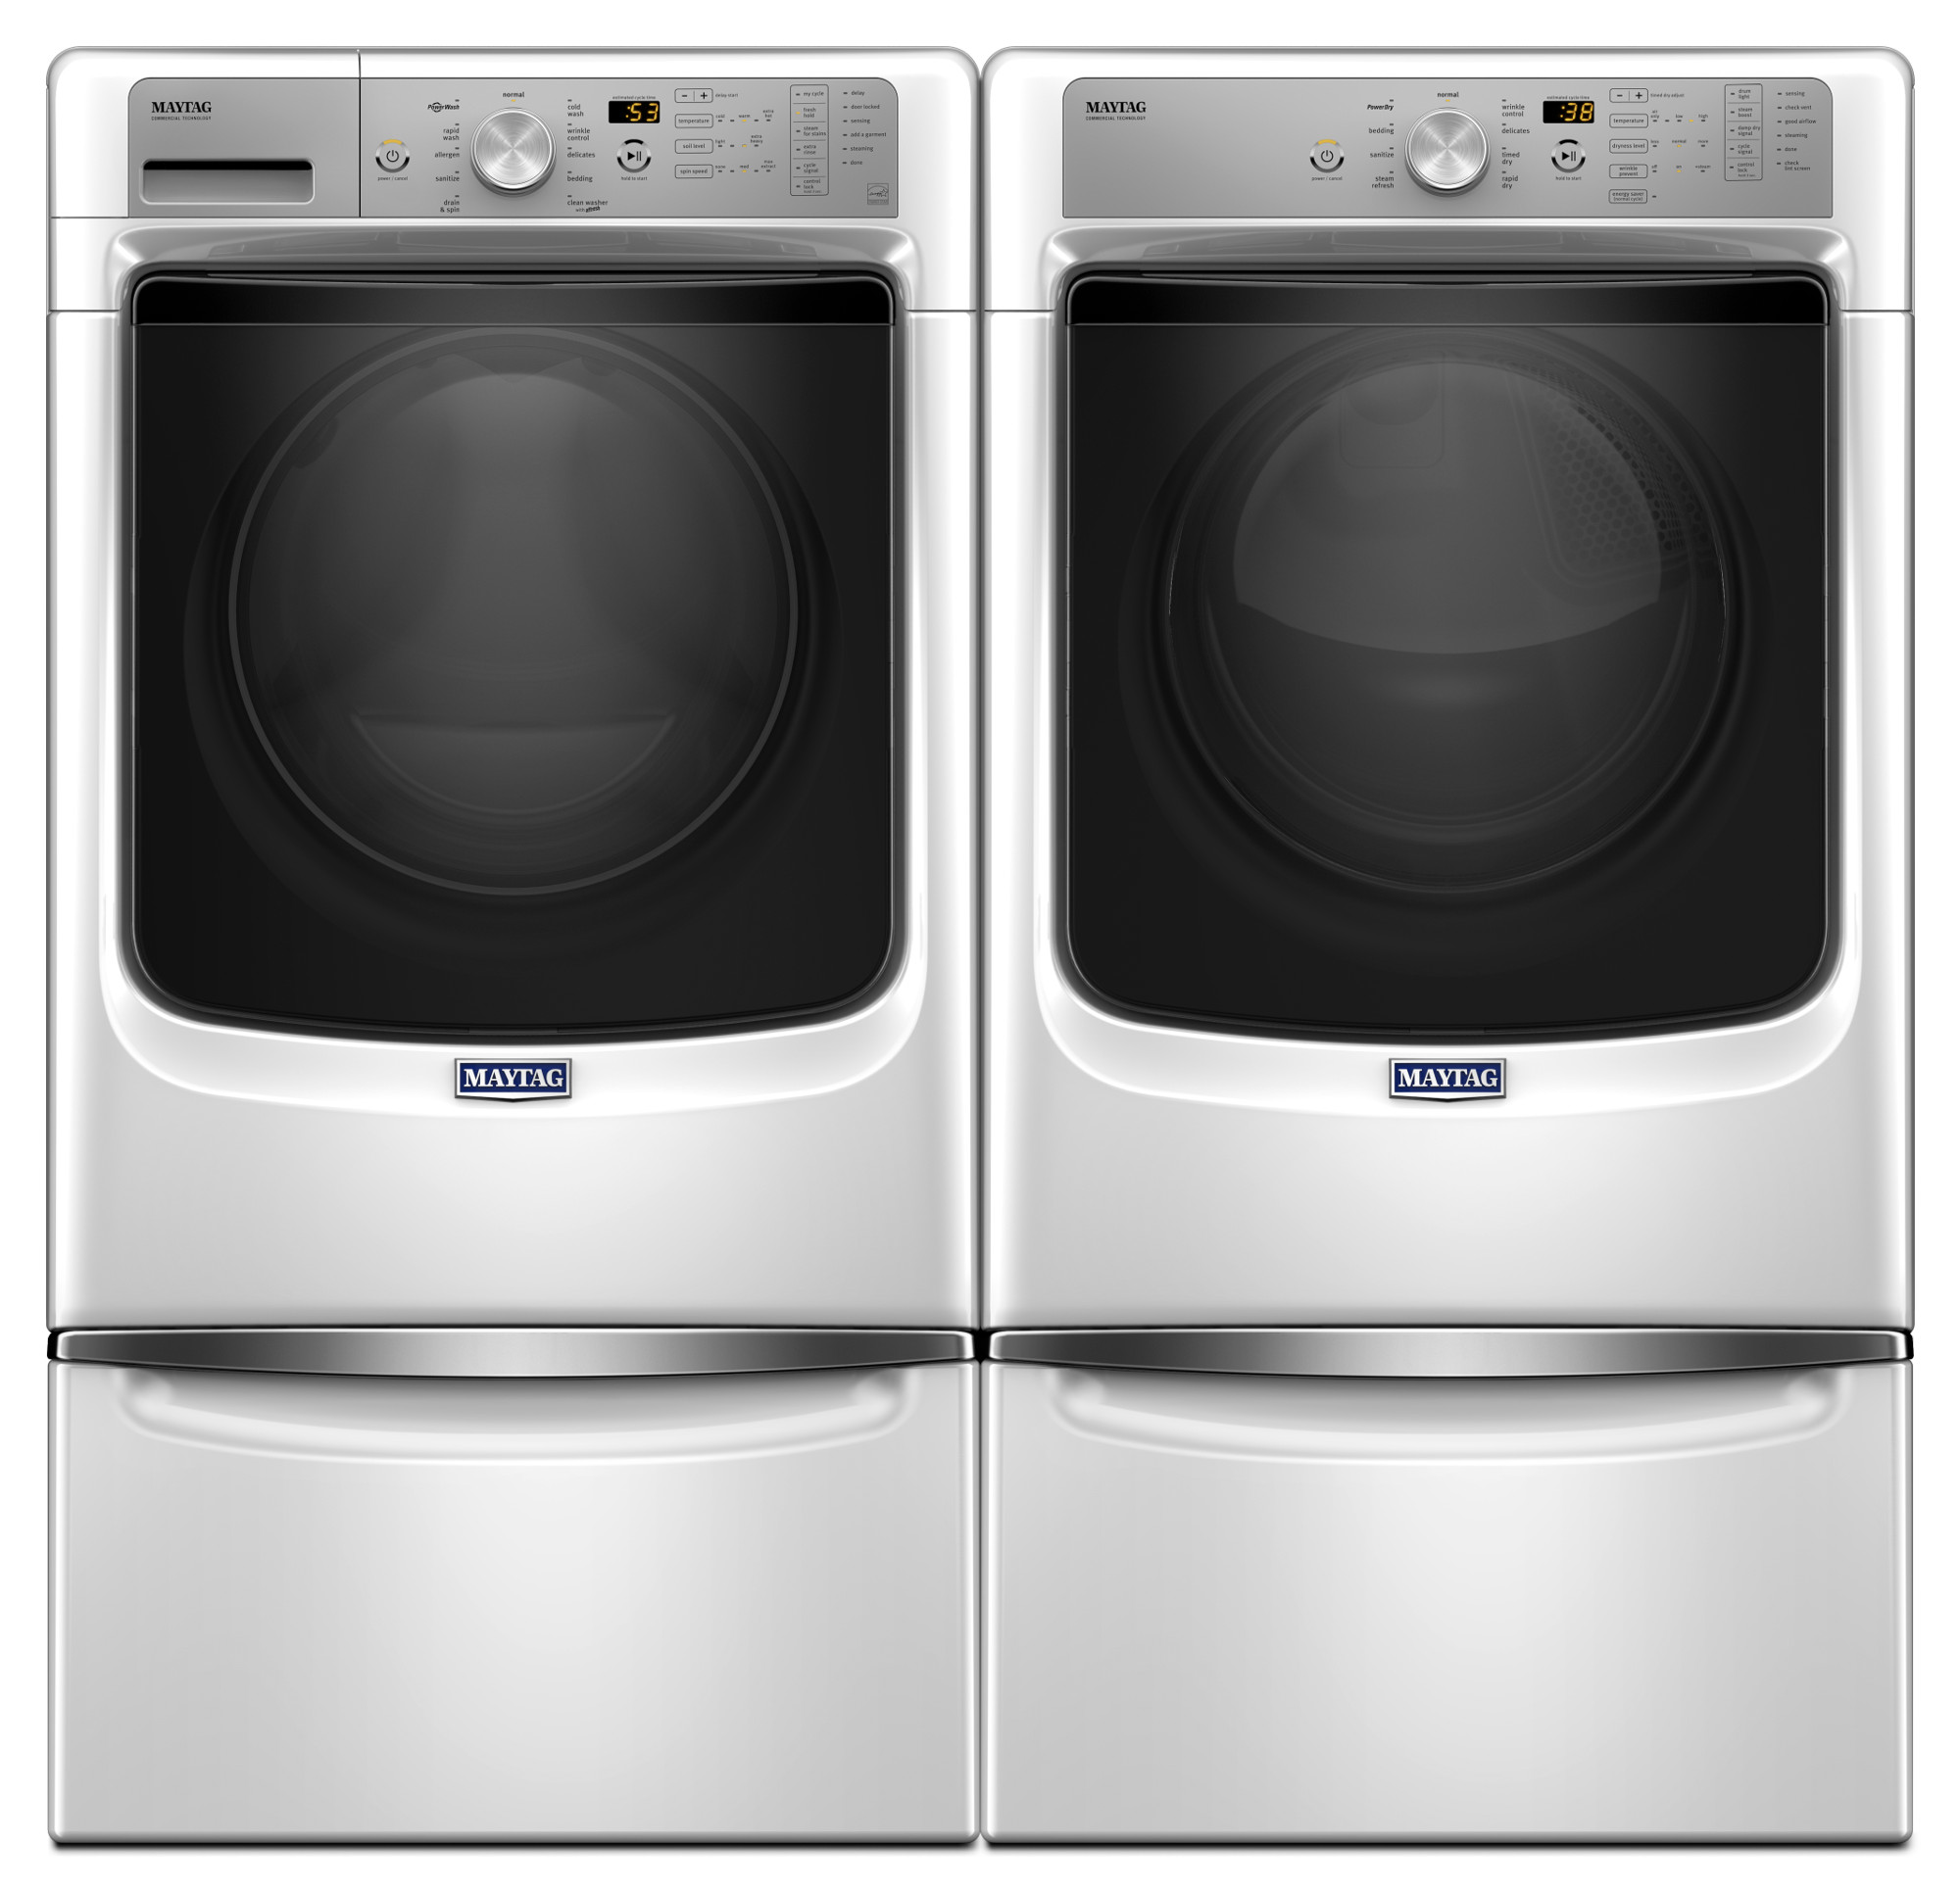 Maytag MGD5500FW 7.4 cu. ft. Gas Dryer w/ Sanitize Cycle and PowerDry System  - White